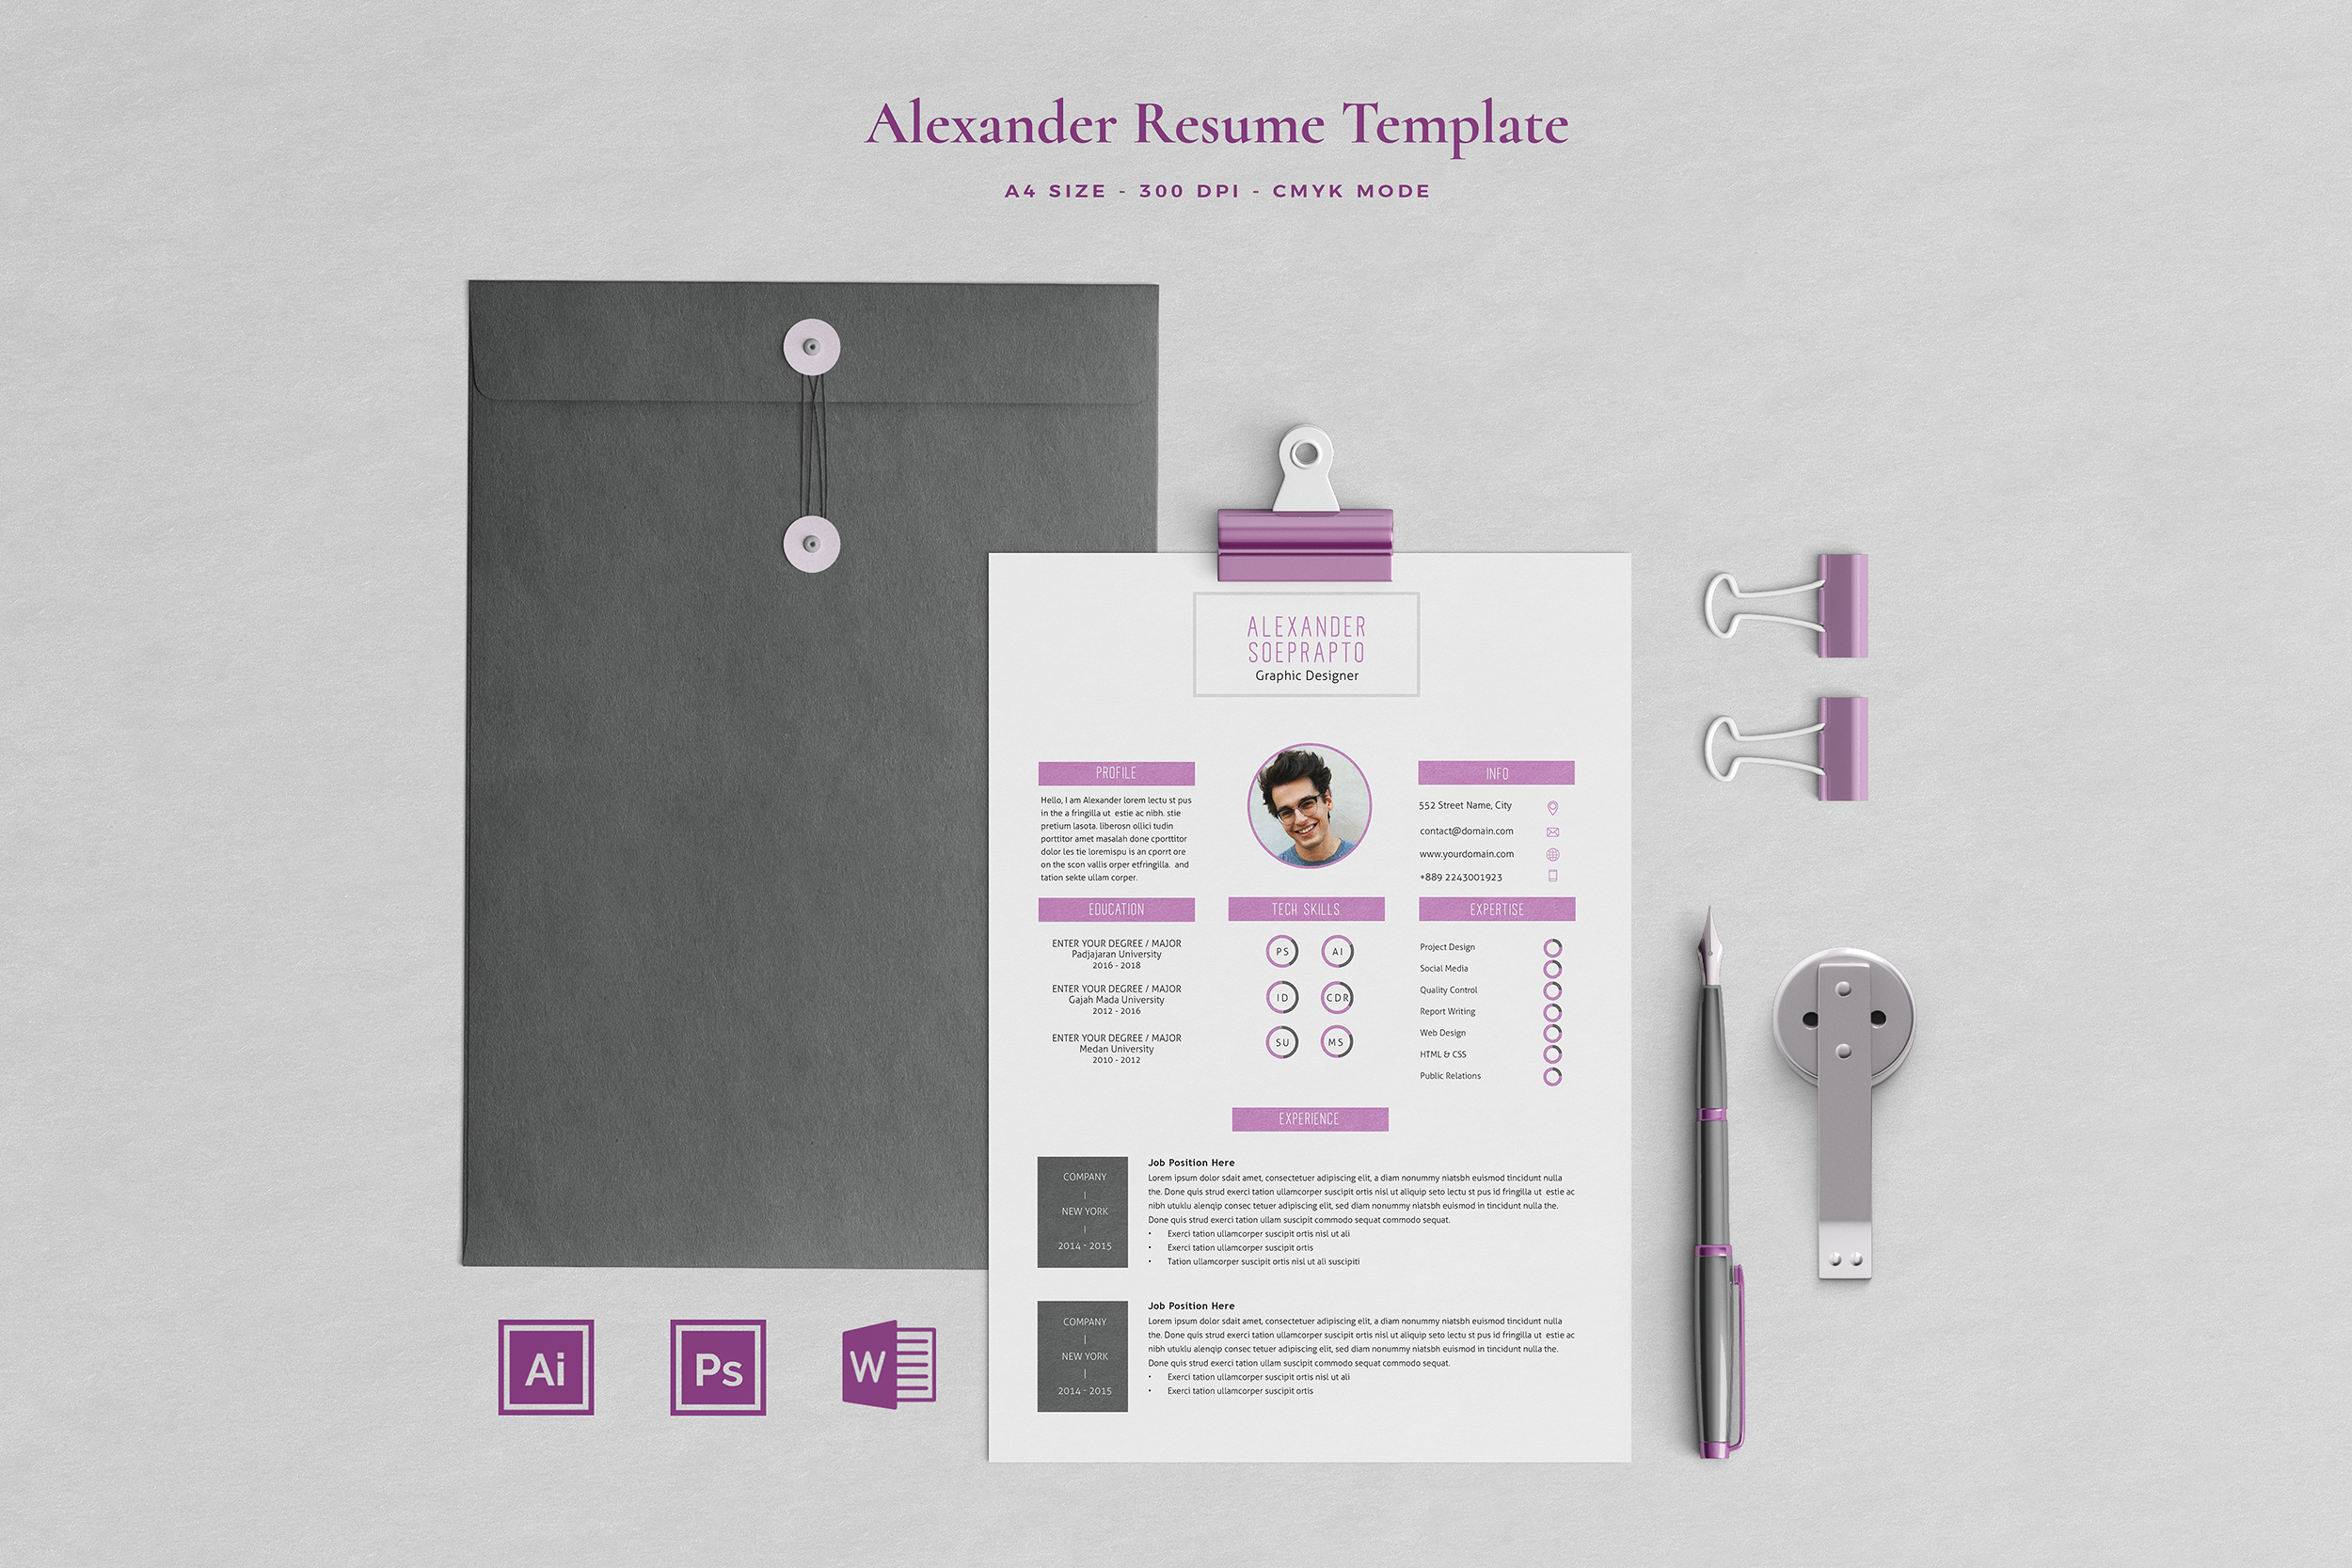 Alexander Resume with Cover Letter Professional Template example image 1